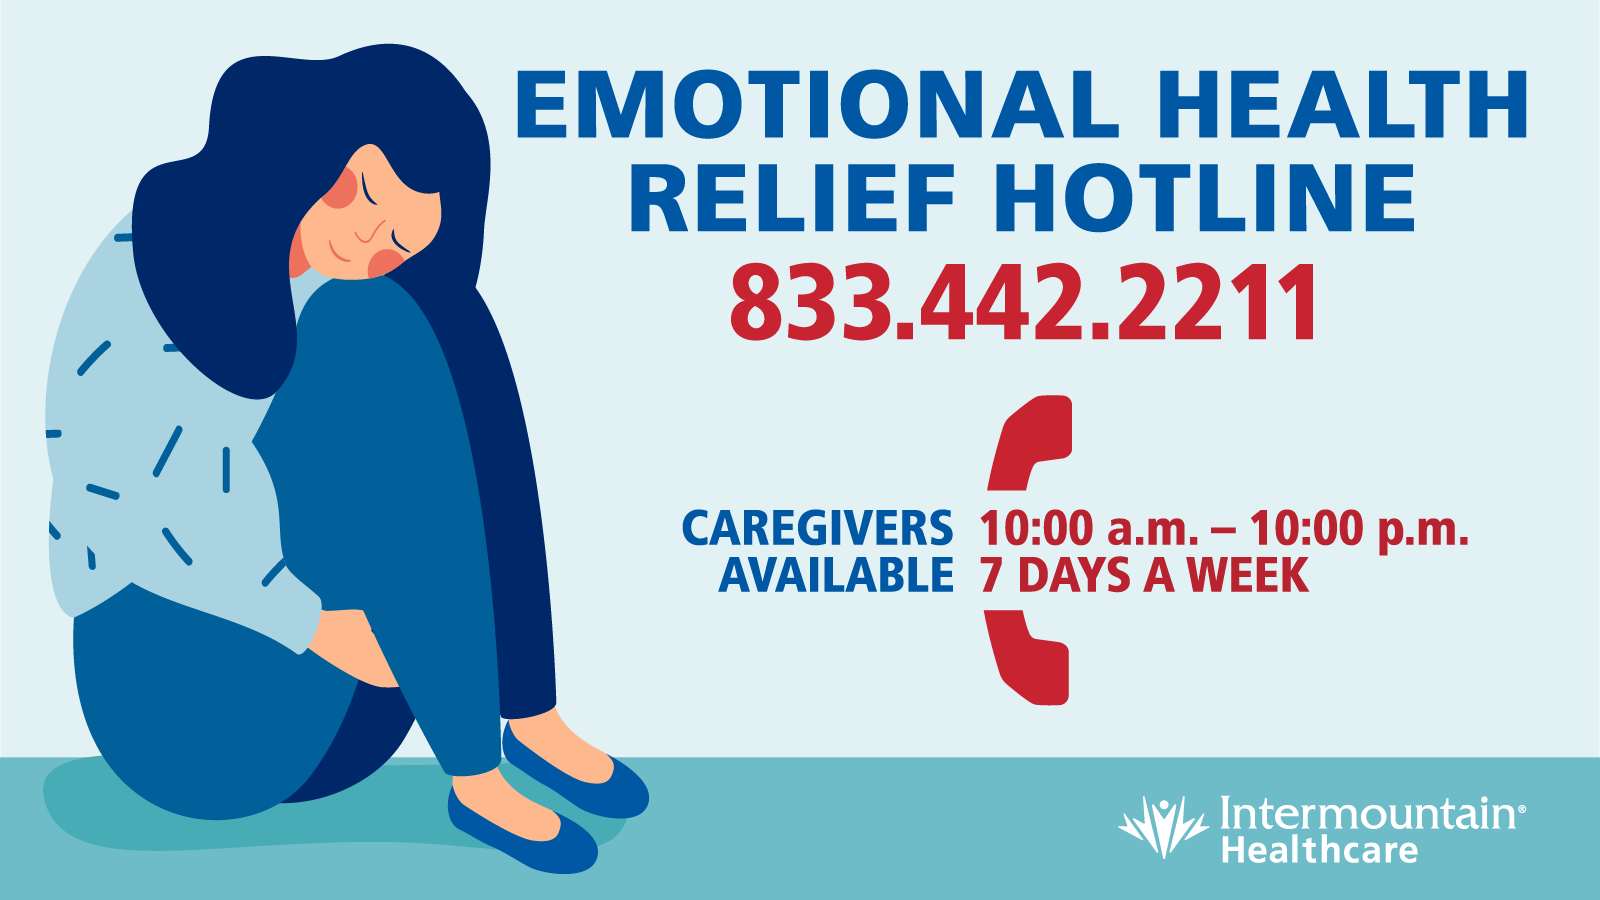 Free Emotional Health Relief Hotline